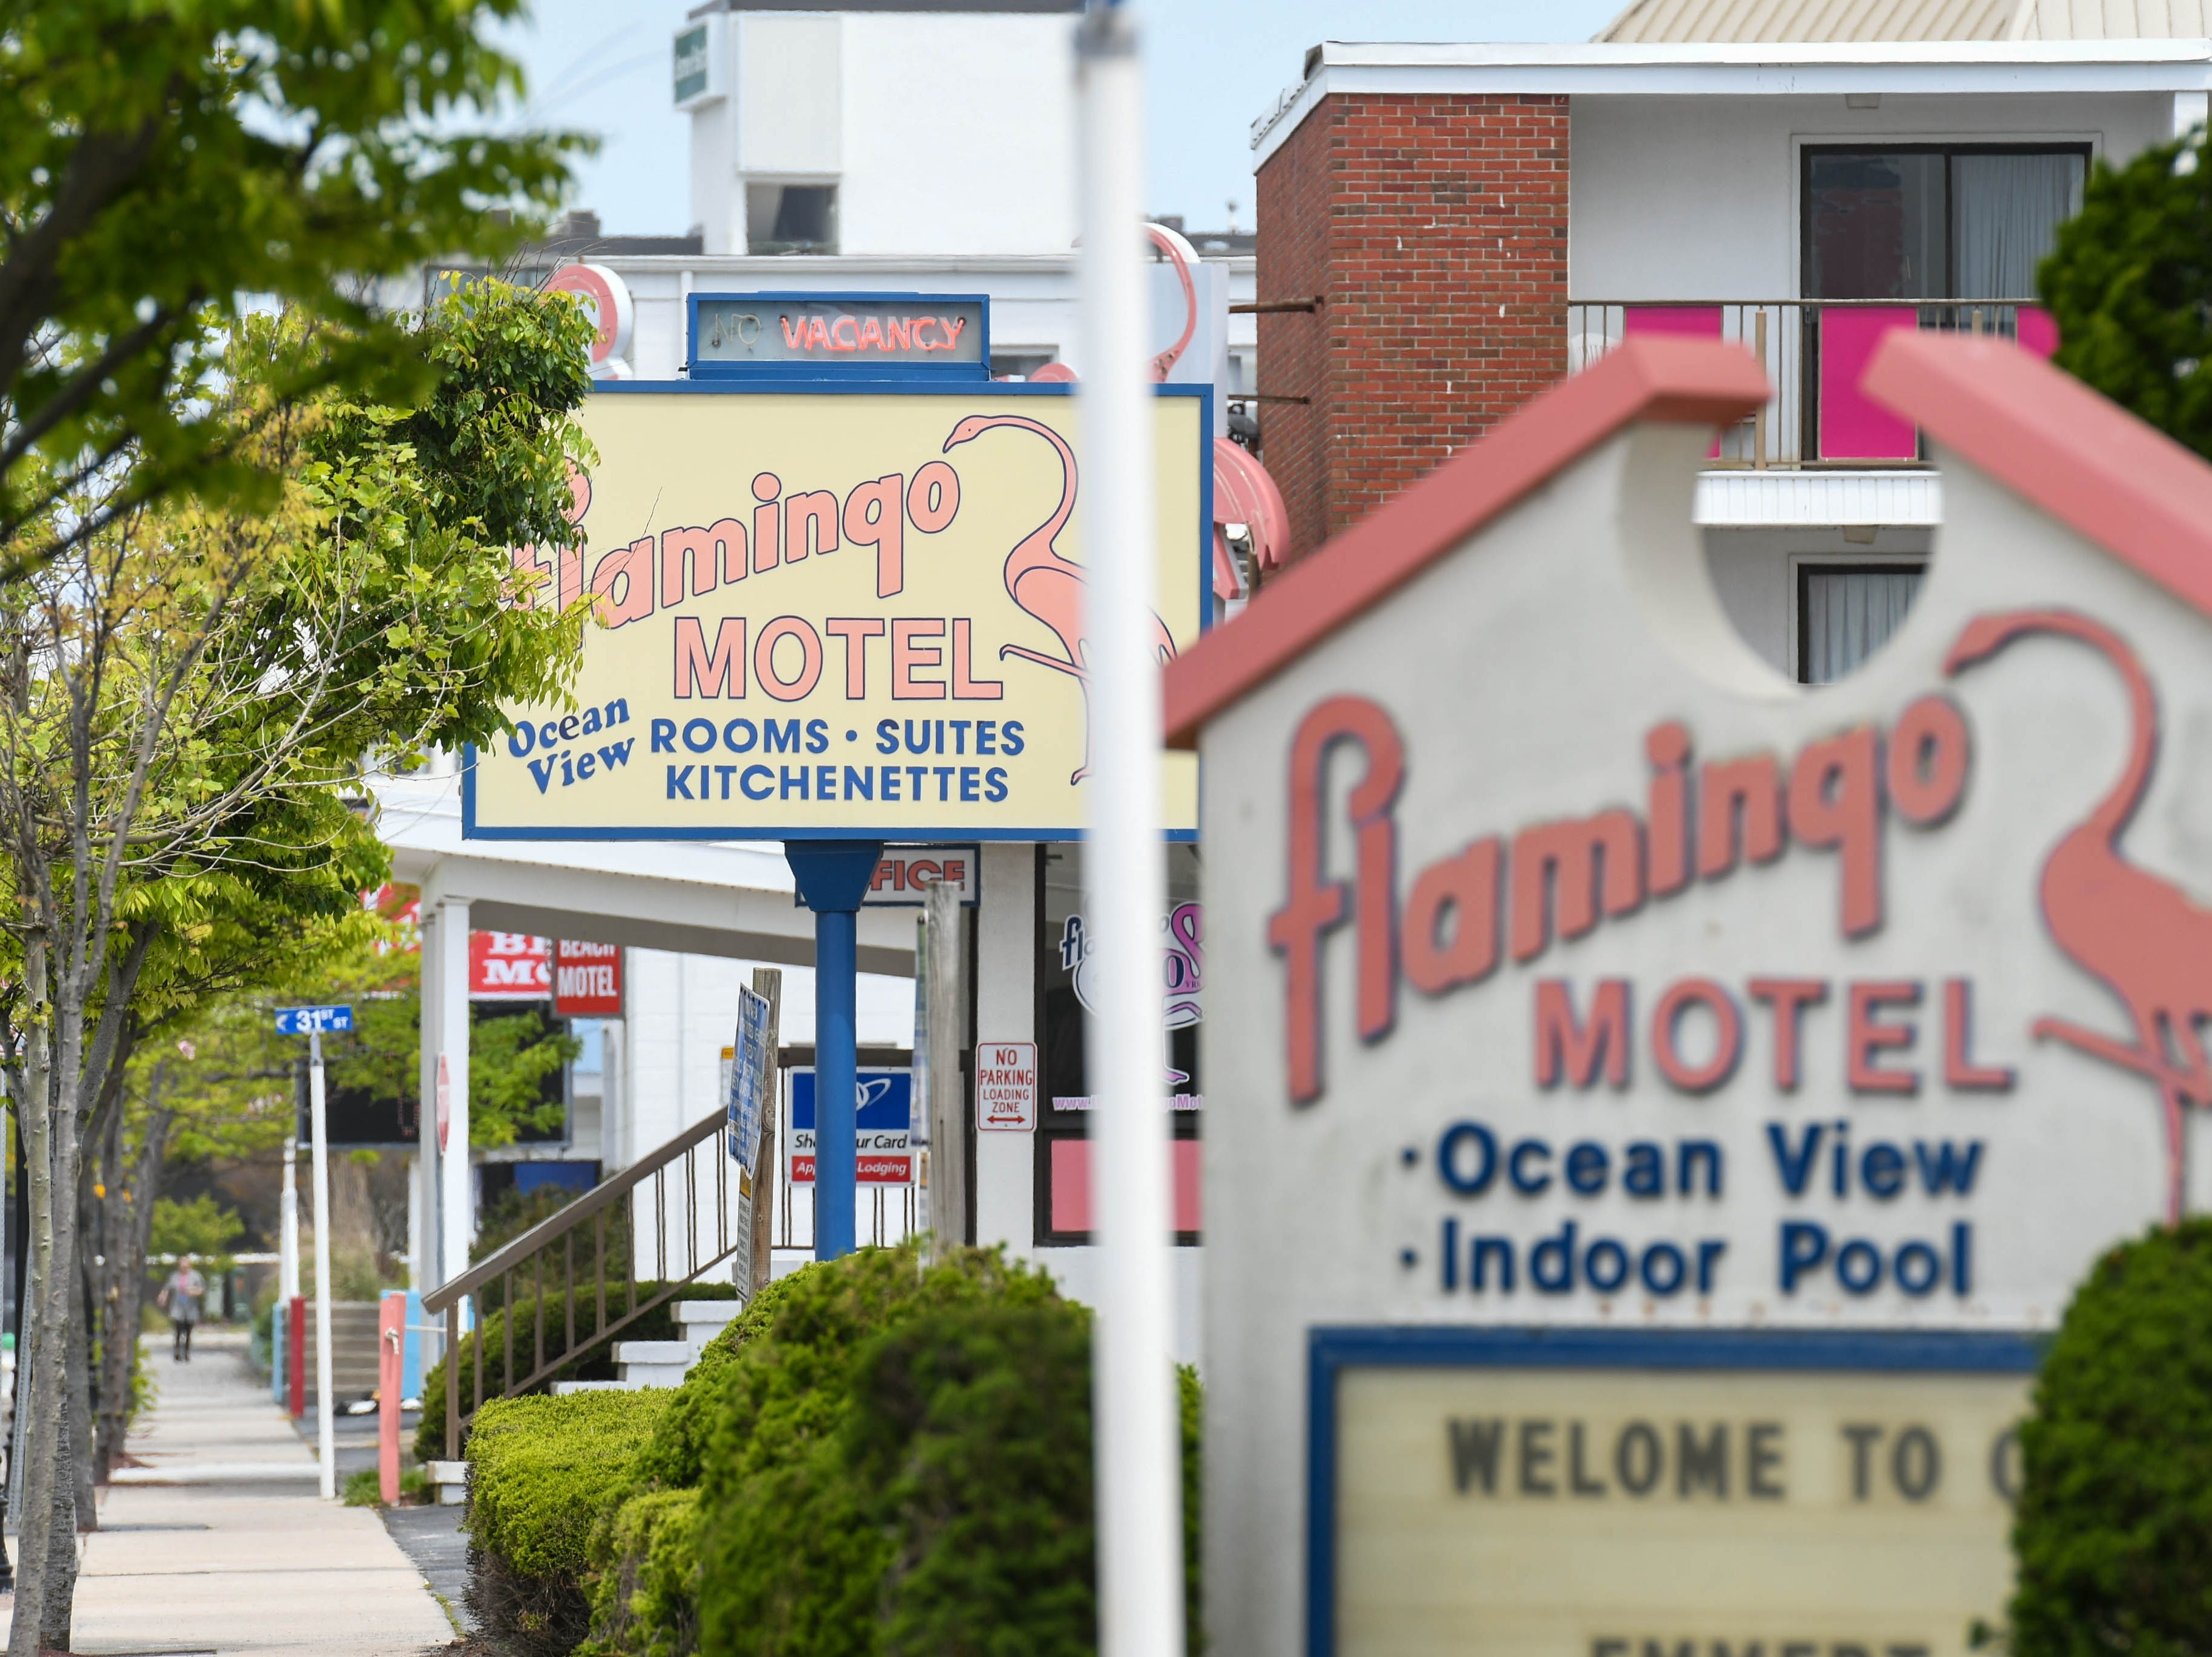 Ocean City's Flamingo Motel sits quiet before peak tourist season on May 8, 2019. The family-owned establishment has been sold to local buyers.